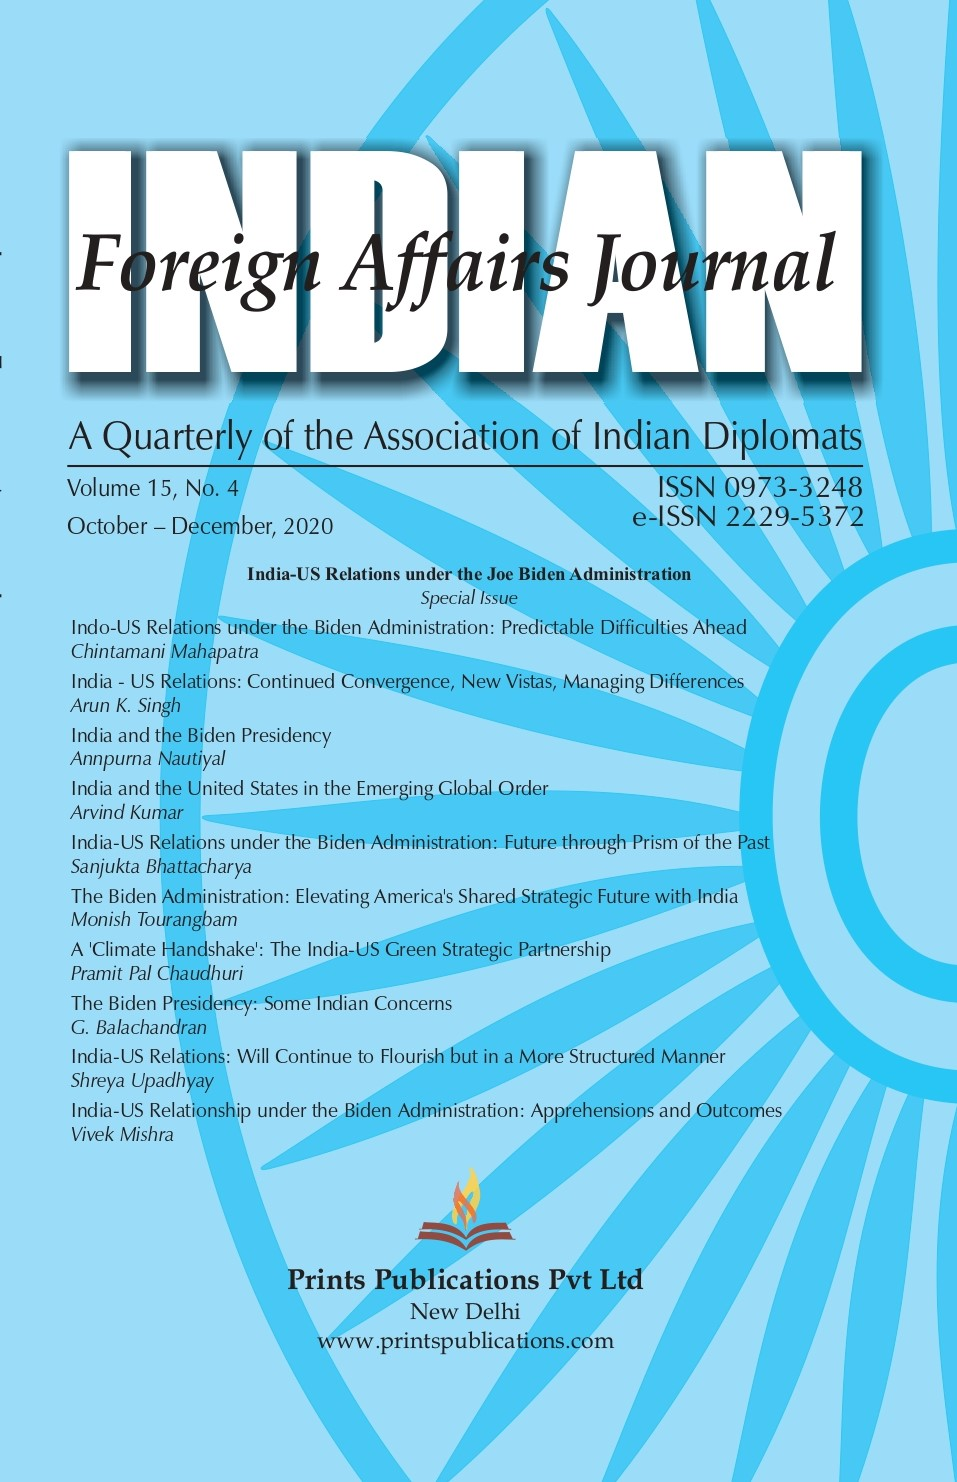 Indian Foreign Affairs Journal - Quarterly Volume: 15 (2020)